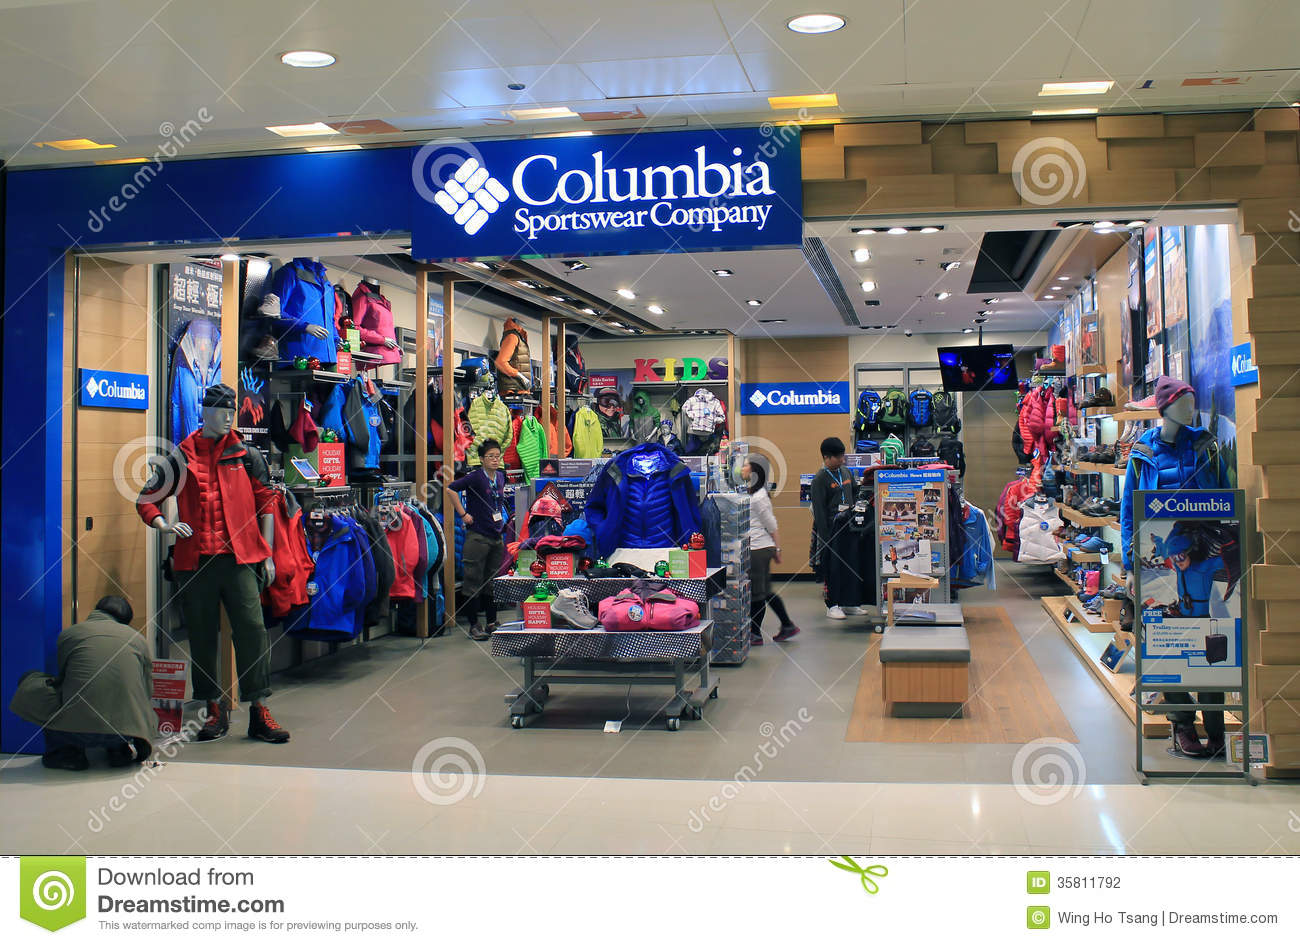 Columbia Hong Kong has a wide selection of apparel in its inventory for men, women, and kids. Amongst the apparel provided by the brand include: Jackets and Vests – windbreakers, rain jackets, 3-in-1 interchangeable jackets, et cetera.